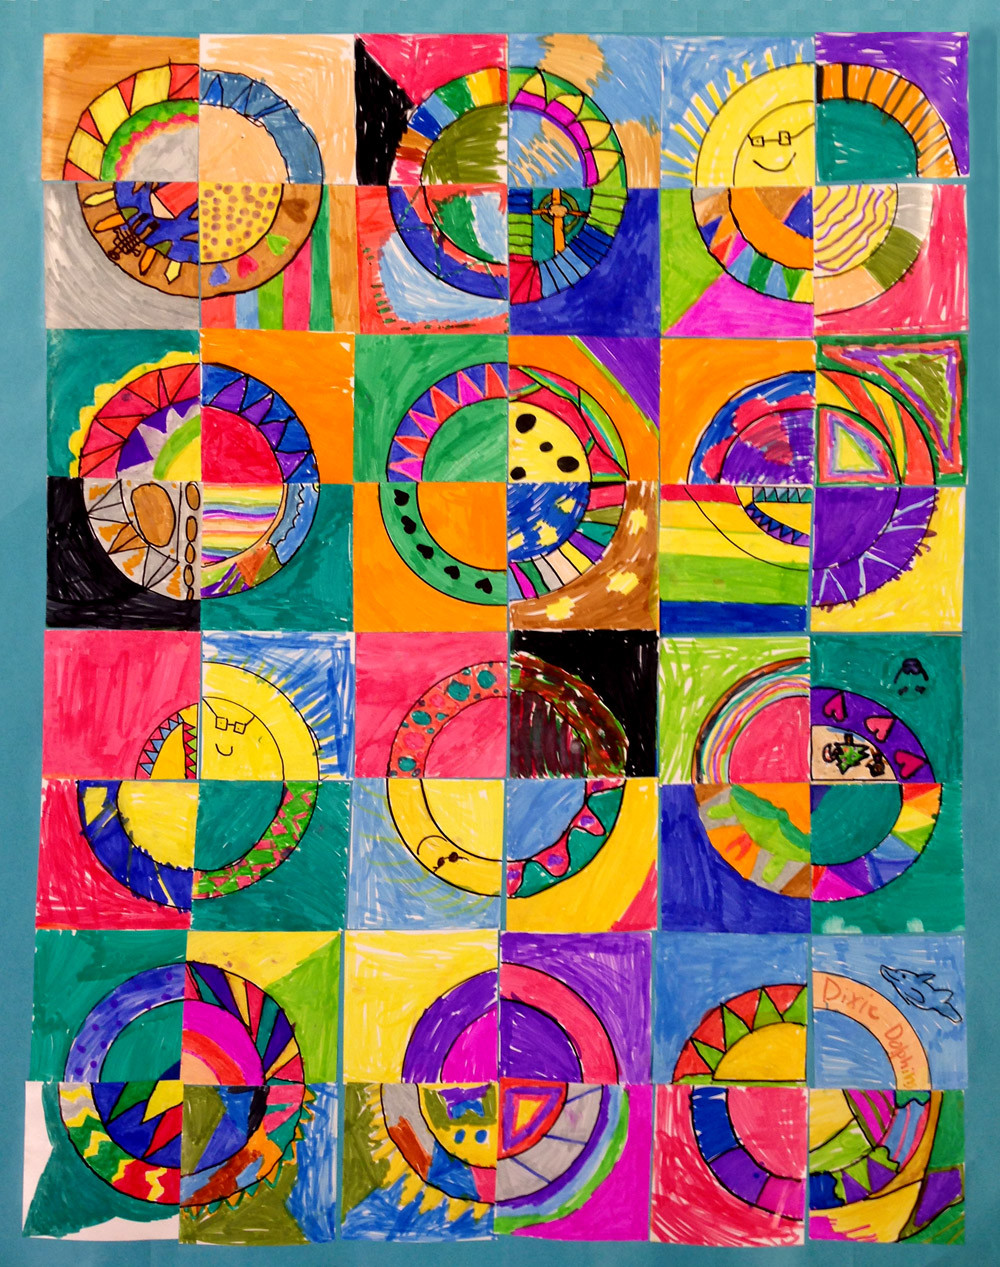 Best ideas about Art Crafts For Kids . Save or Pin Quilt Circle Art for Kids · Art Projects for Kids Now.